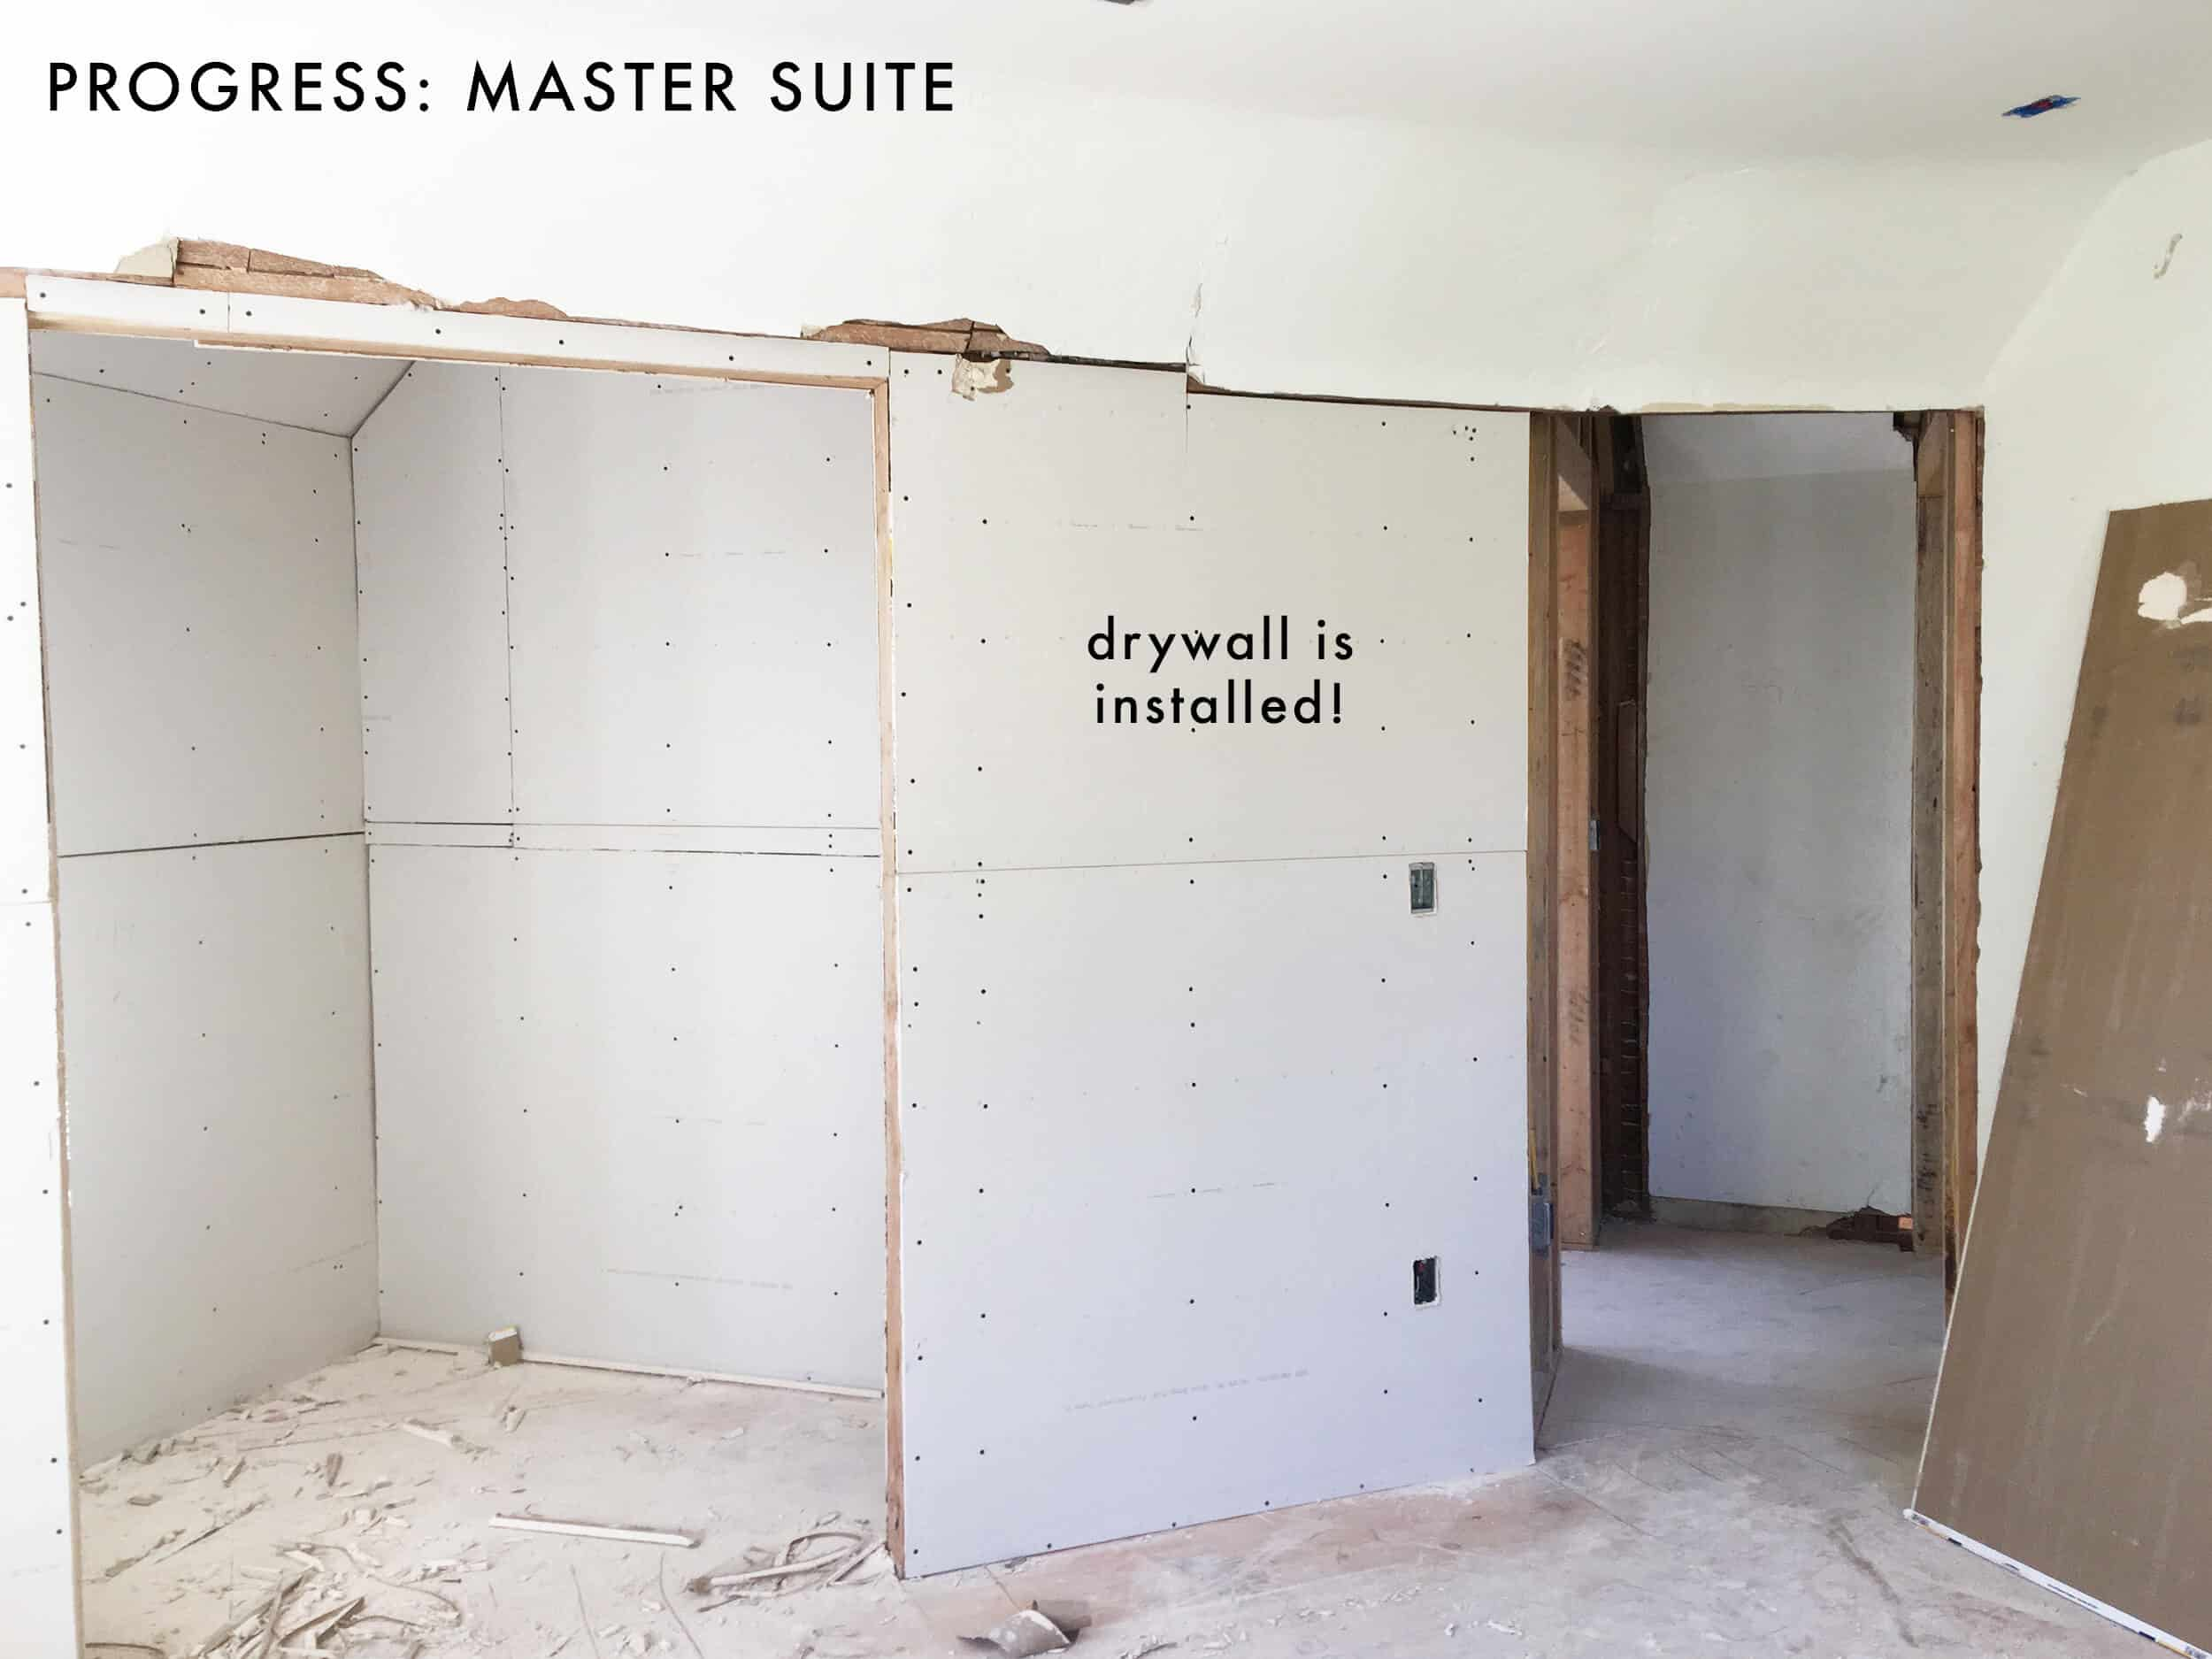 Emily-Henderson_Waverly_Upstairs_Progress_Master-Suite_Drywall